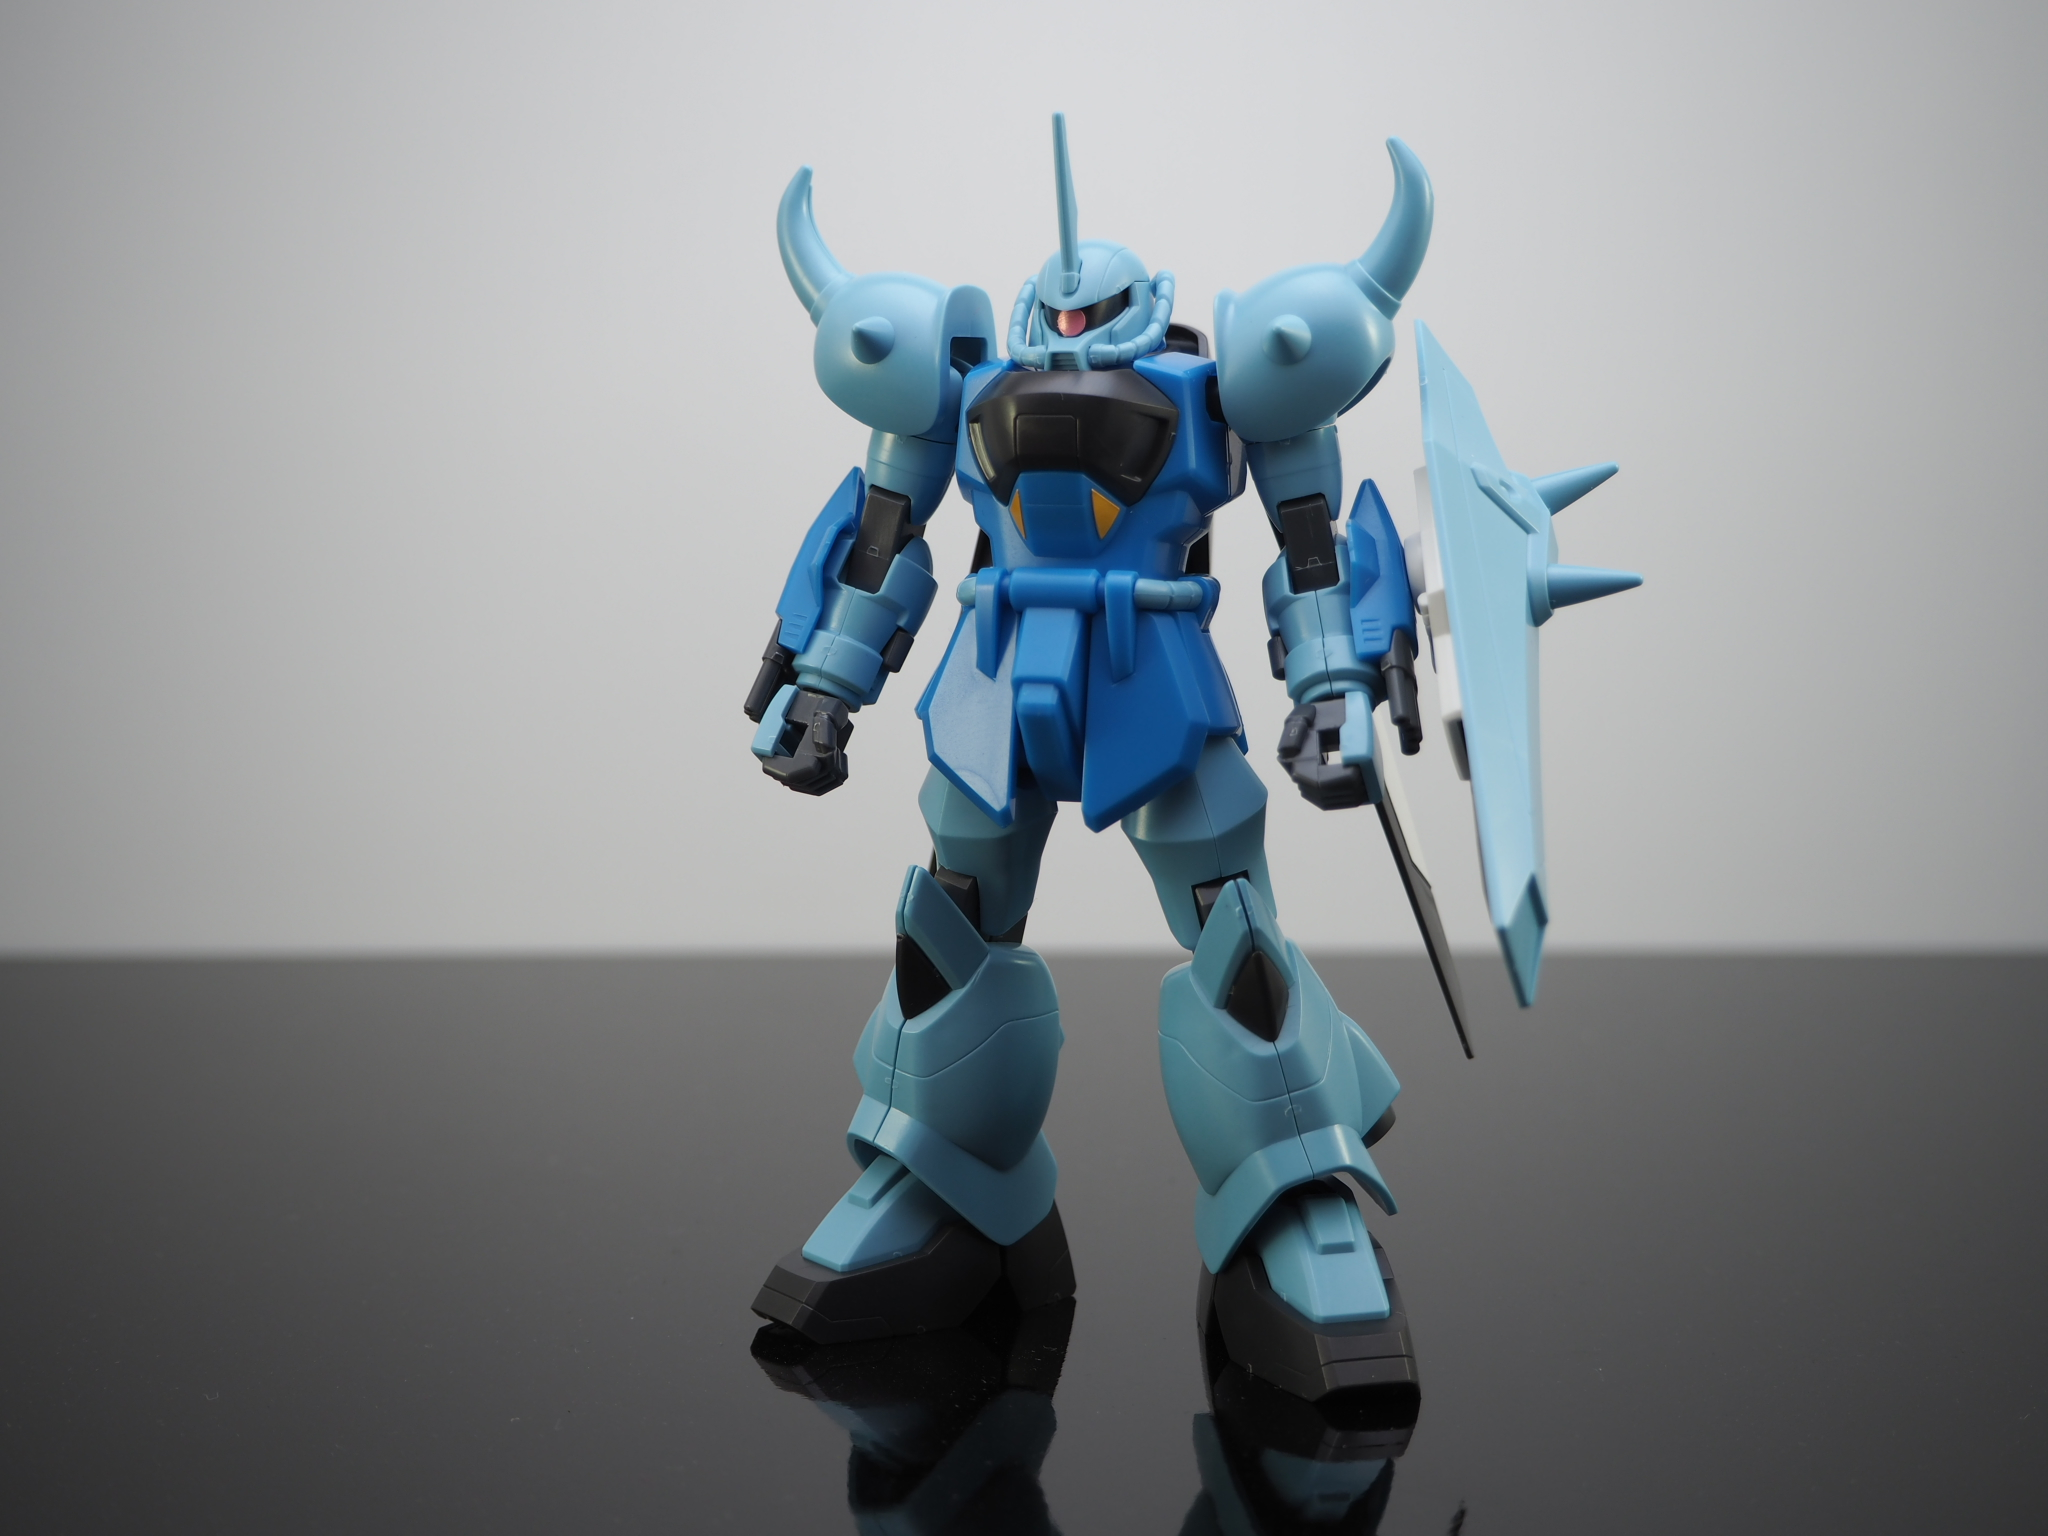 HG 1/144 ZGMF-2000 グフイグナイテッド(量産機) [GOUF Ignited Mass Production Colors]